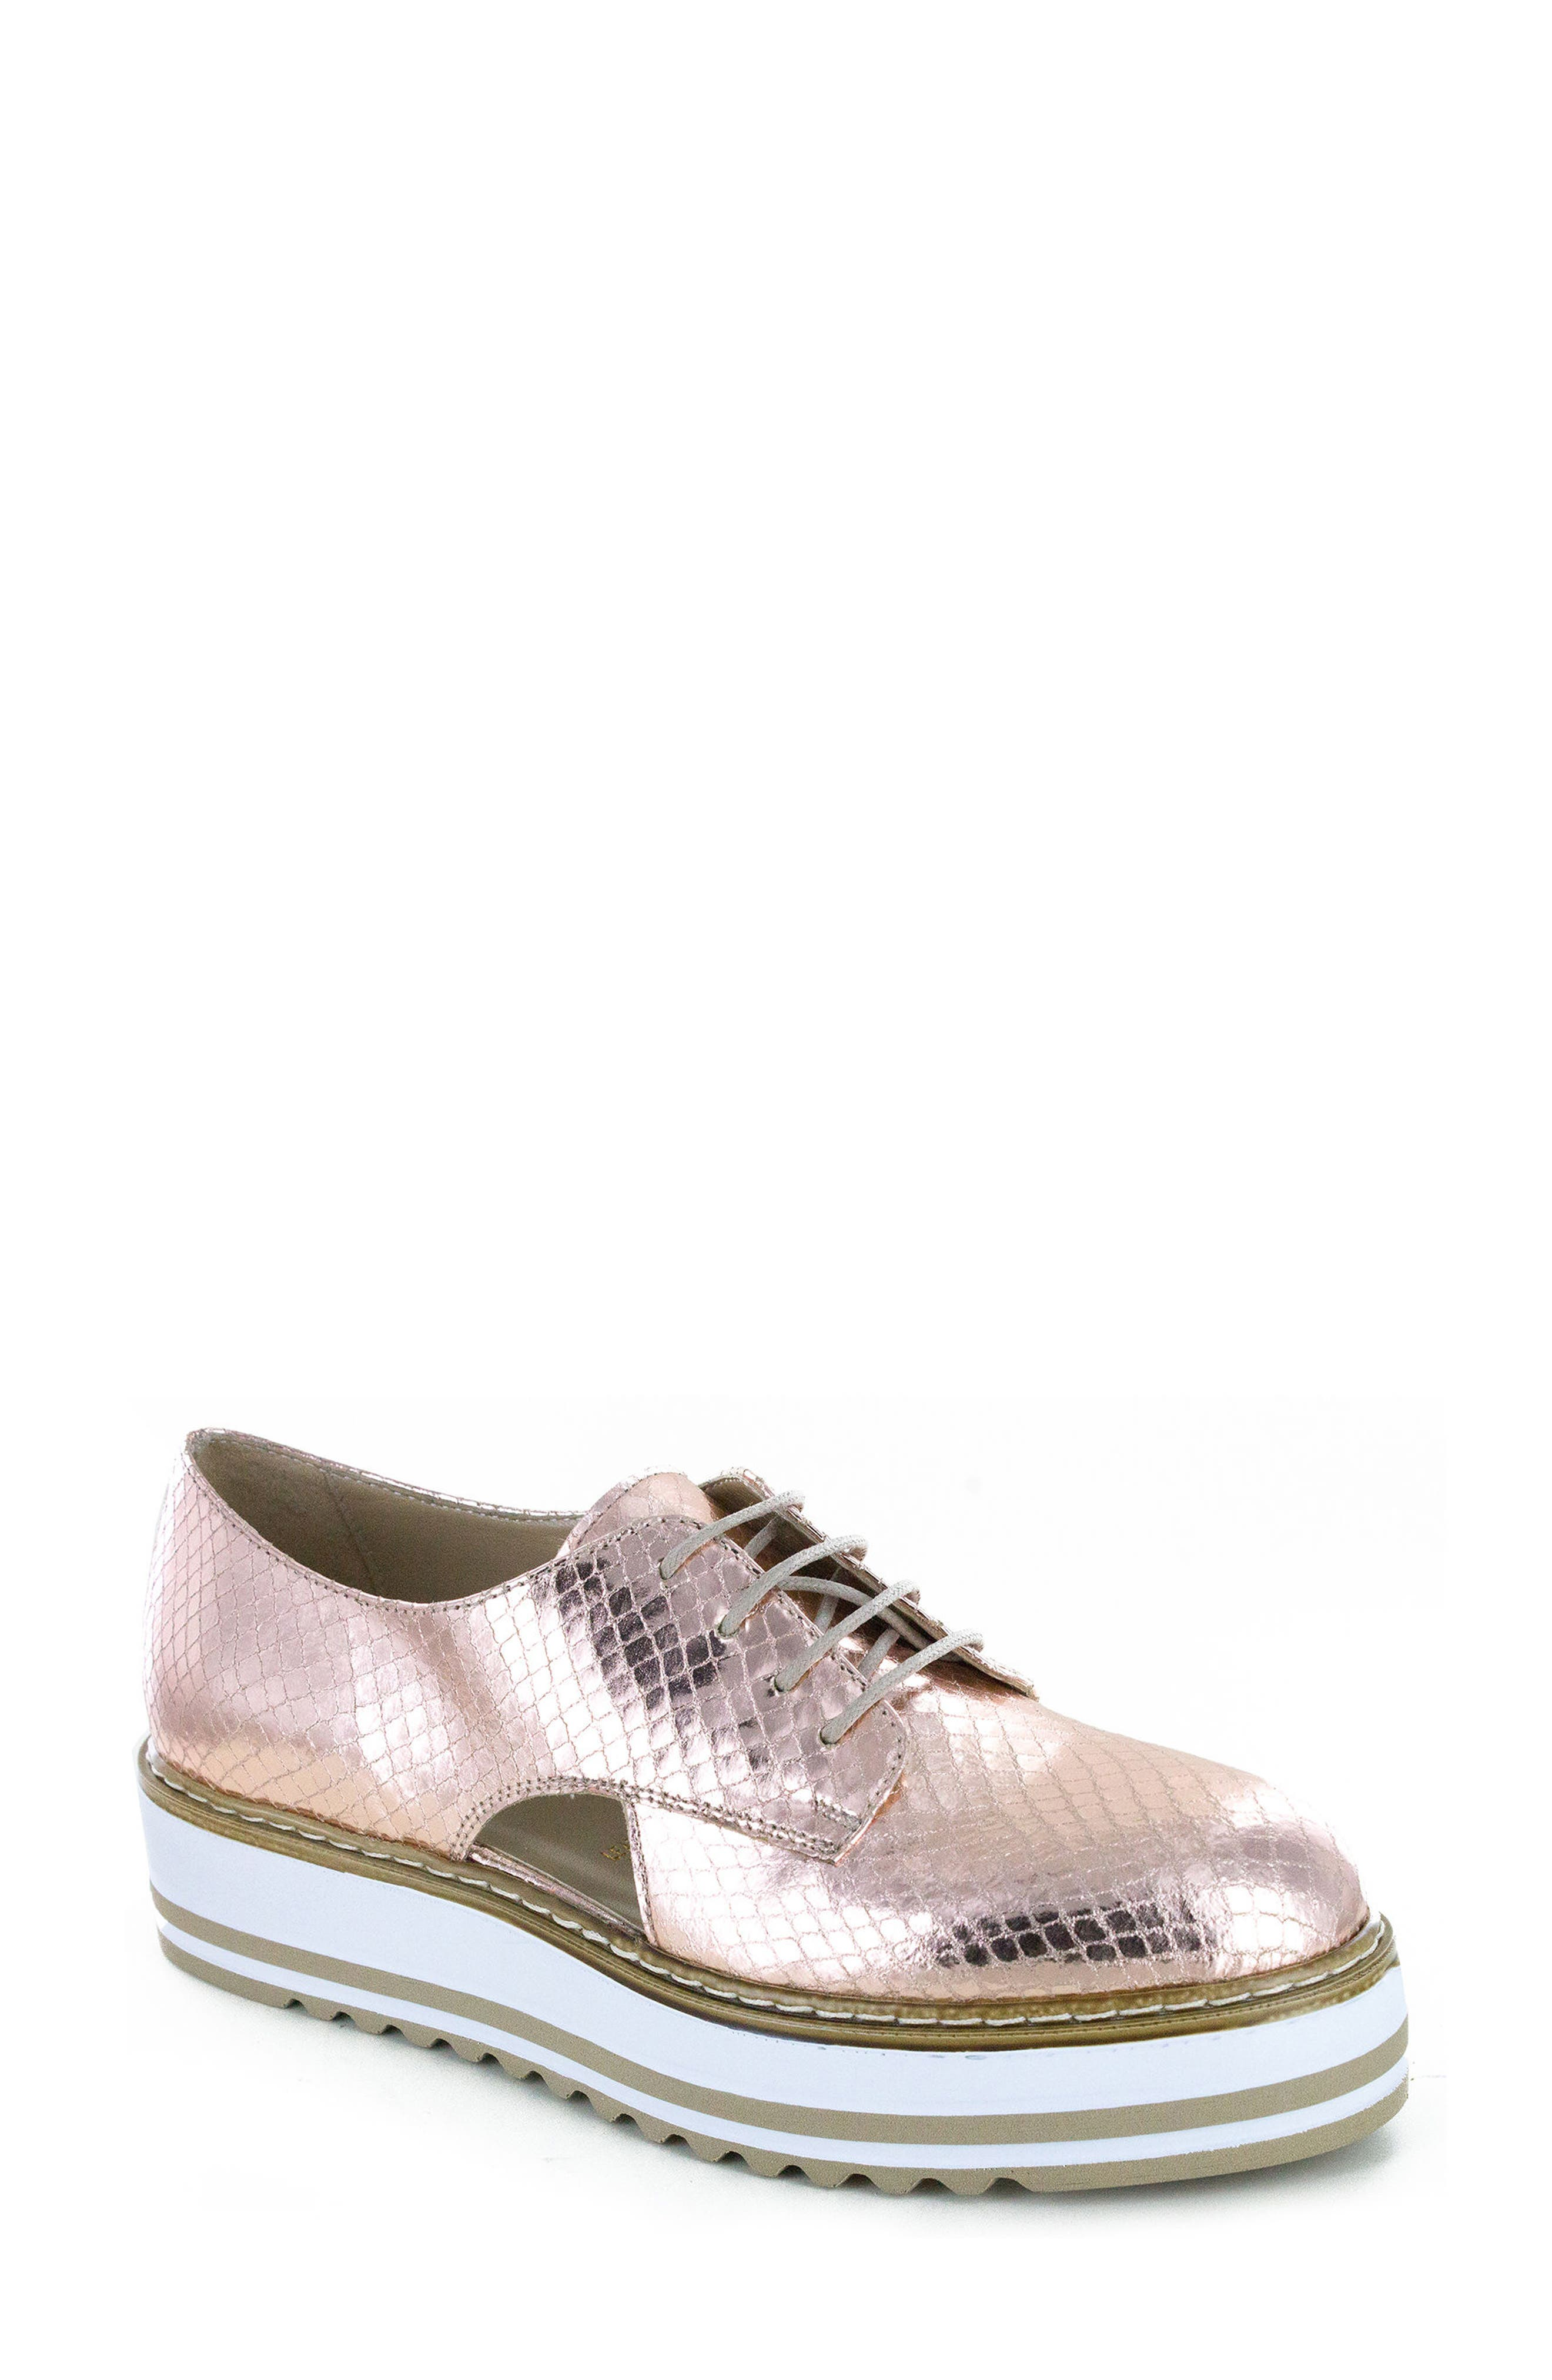 'Brody' Platform Oxford,                             Main thumbnail 1, color,                             ROSE GOLD LEATHER